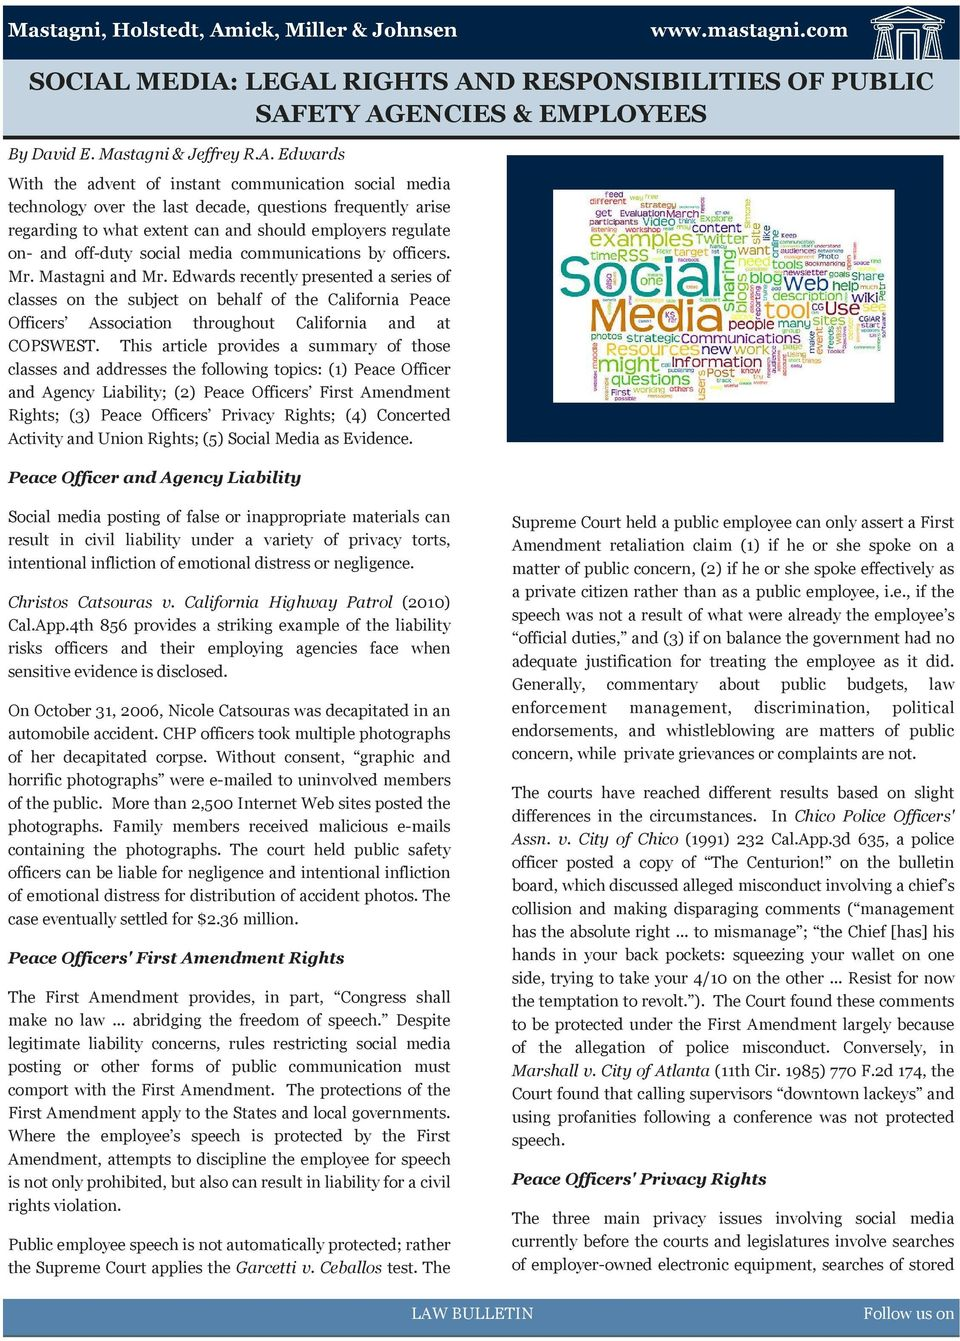 LEGAL RIGHTS AND RESPONSIBILITIES OF PUBLIC SAFETY AGENCIES & EMPLOYEES By David E. Mastagni & Jeffrey R.A. Edwards With the advent of instant communication social media technology over the last